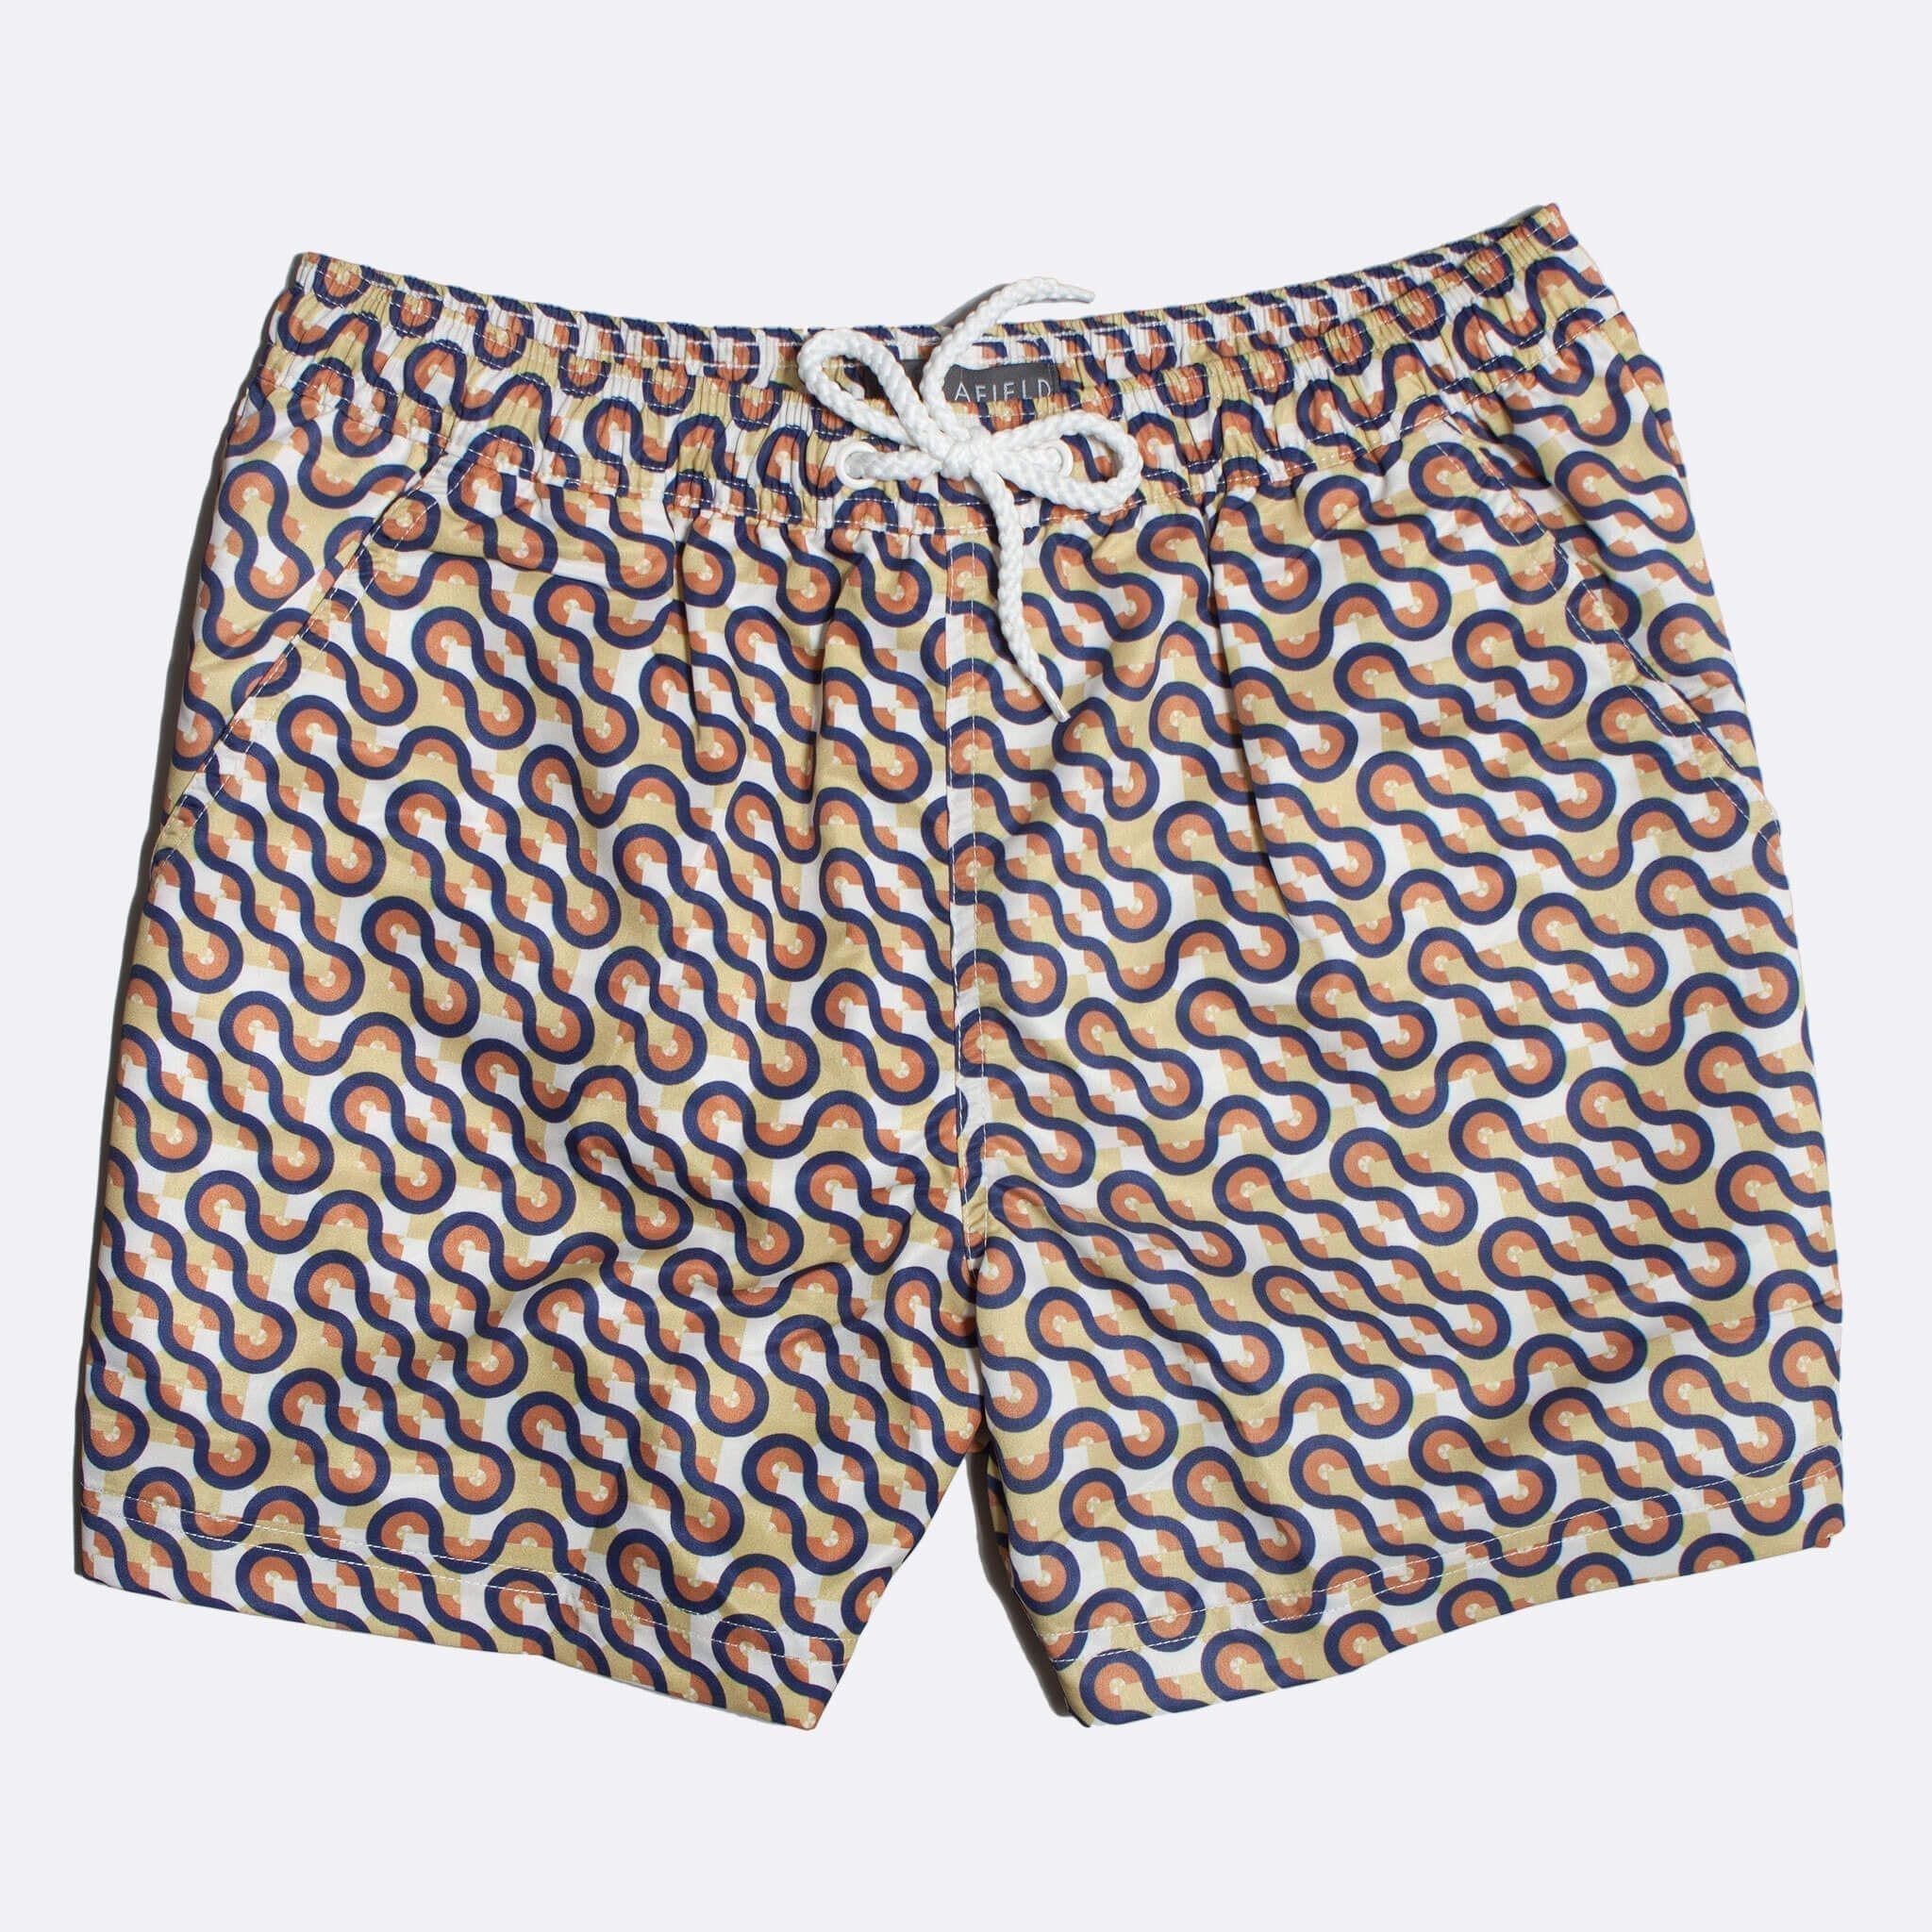 Far Afield Waves Print Swim Shorts a Multi Colour Recycled Plastic Surfing Repeat Pattern Fabric Casual